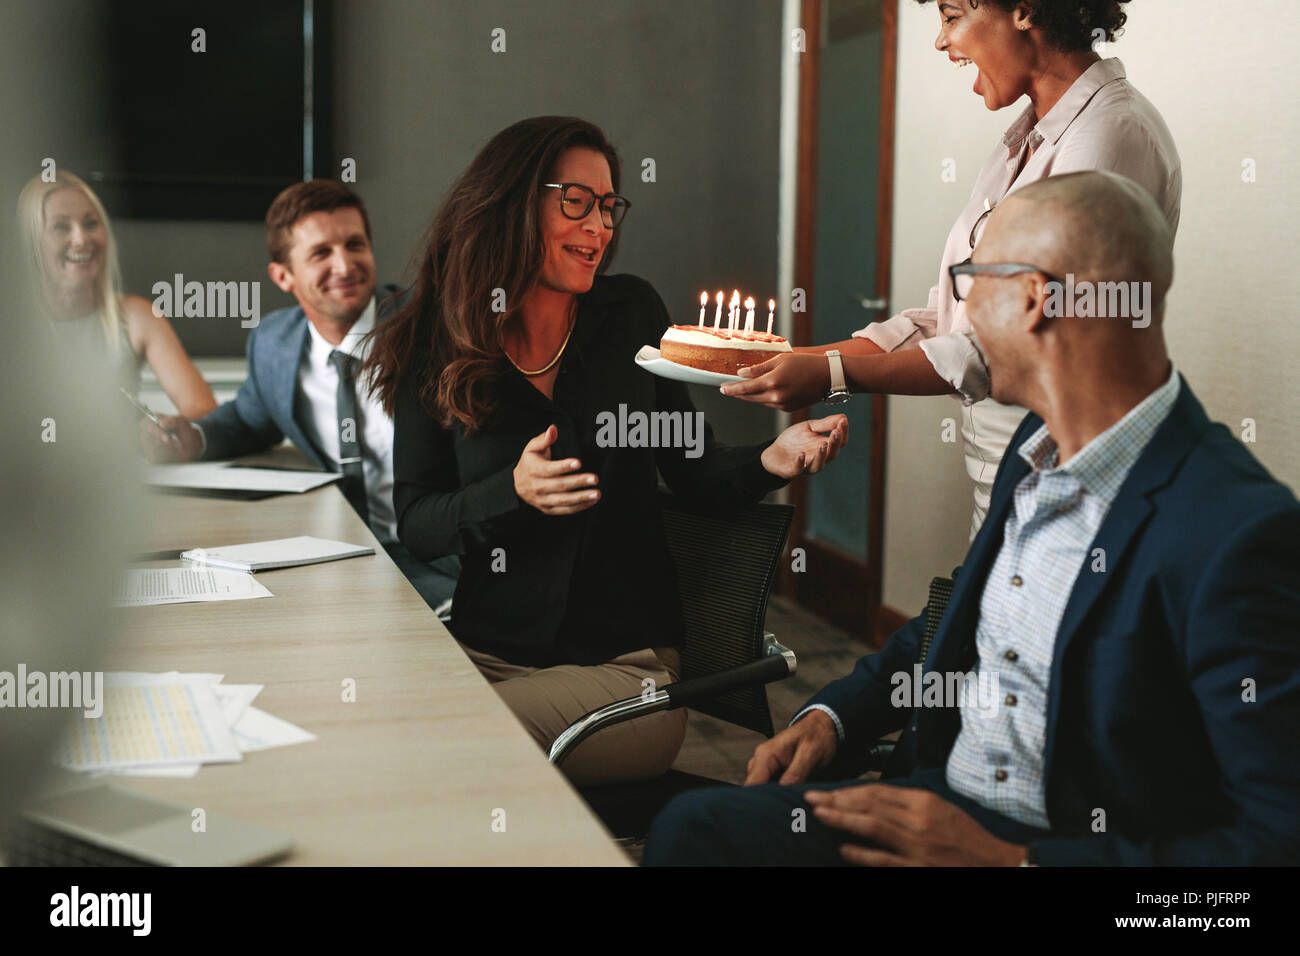 African woman giving a birthday cake to female executive in conference room. Workers celebrating colleague's birthday in office during a meeting. - Stock Image